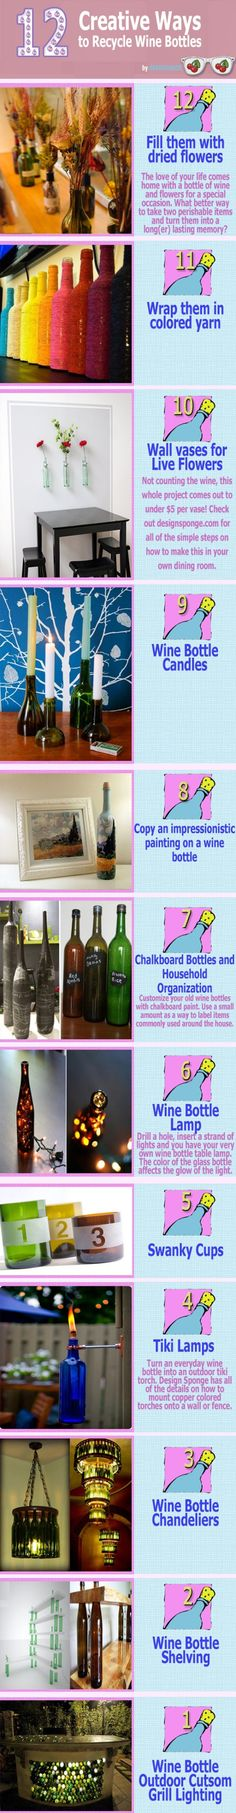 12 Creative Ways To Recycle Wine Bottles